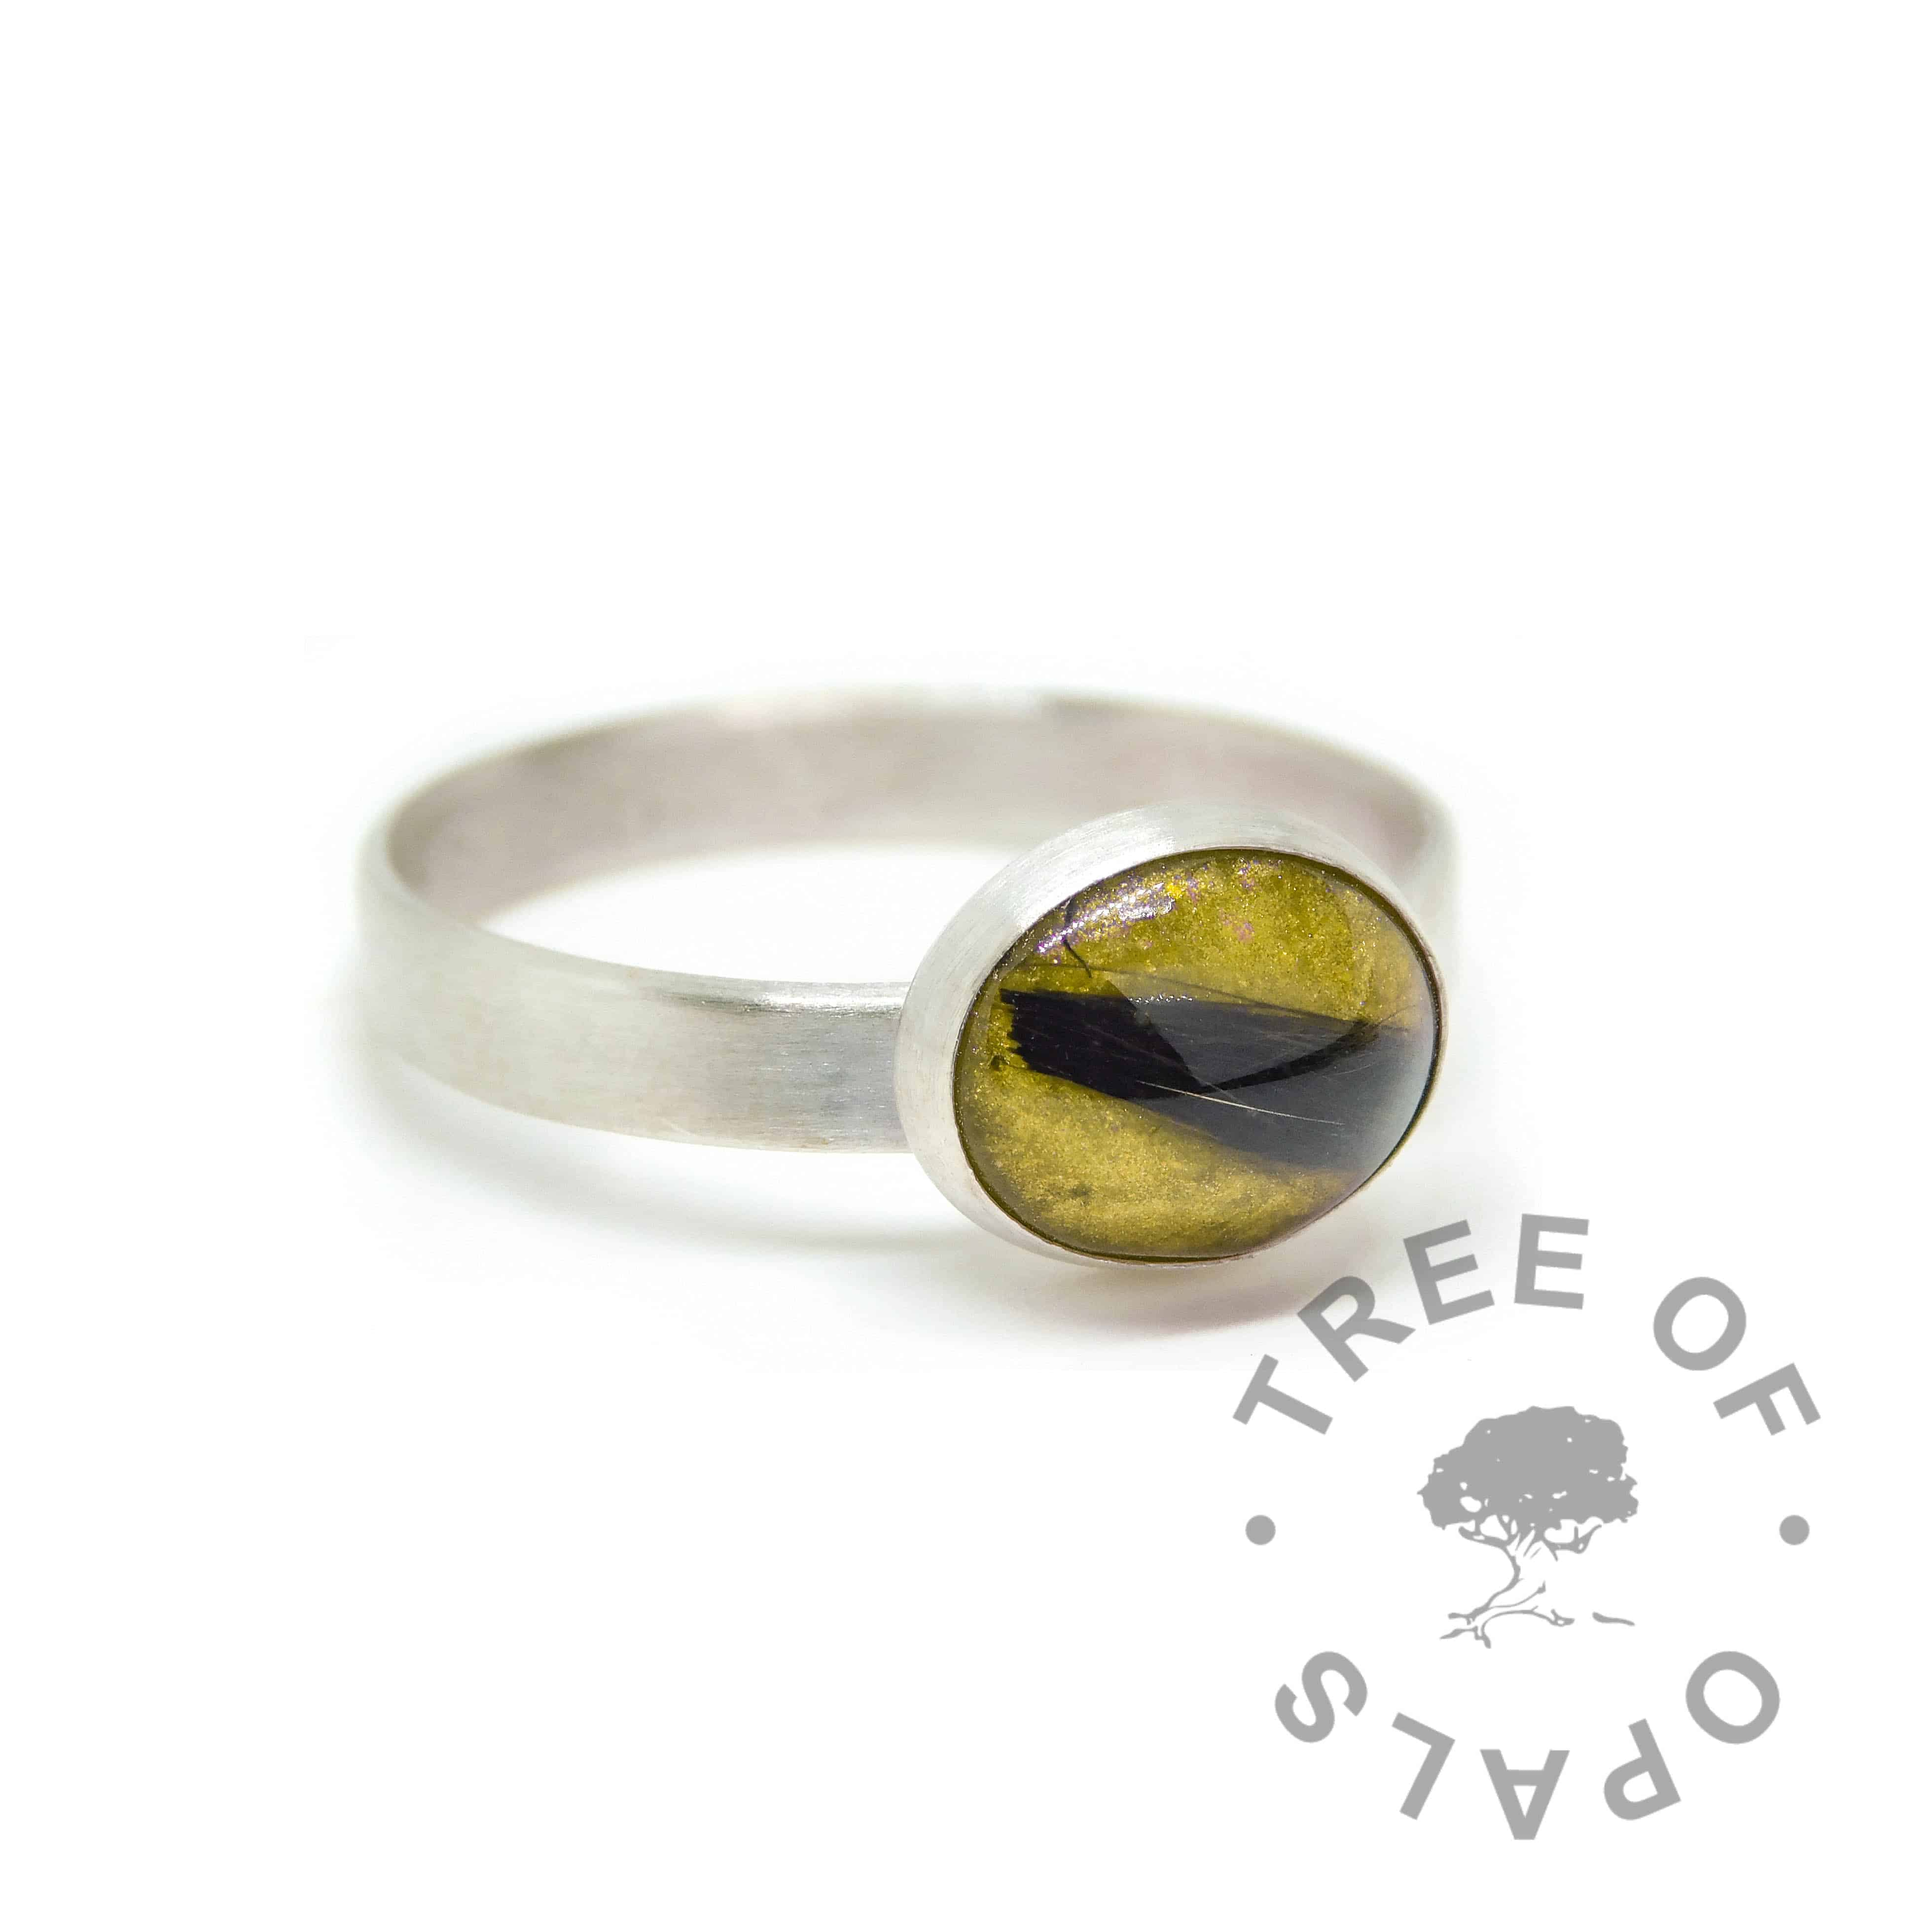 Daffodil yellow lock of hair ring on brushed wire band. Solid sterling EcoSilver handmade ring. 10x8mm bezel cup rubbed over the cabochon for security.